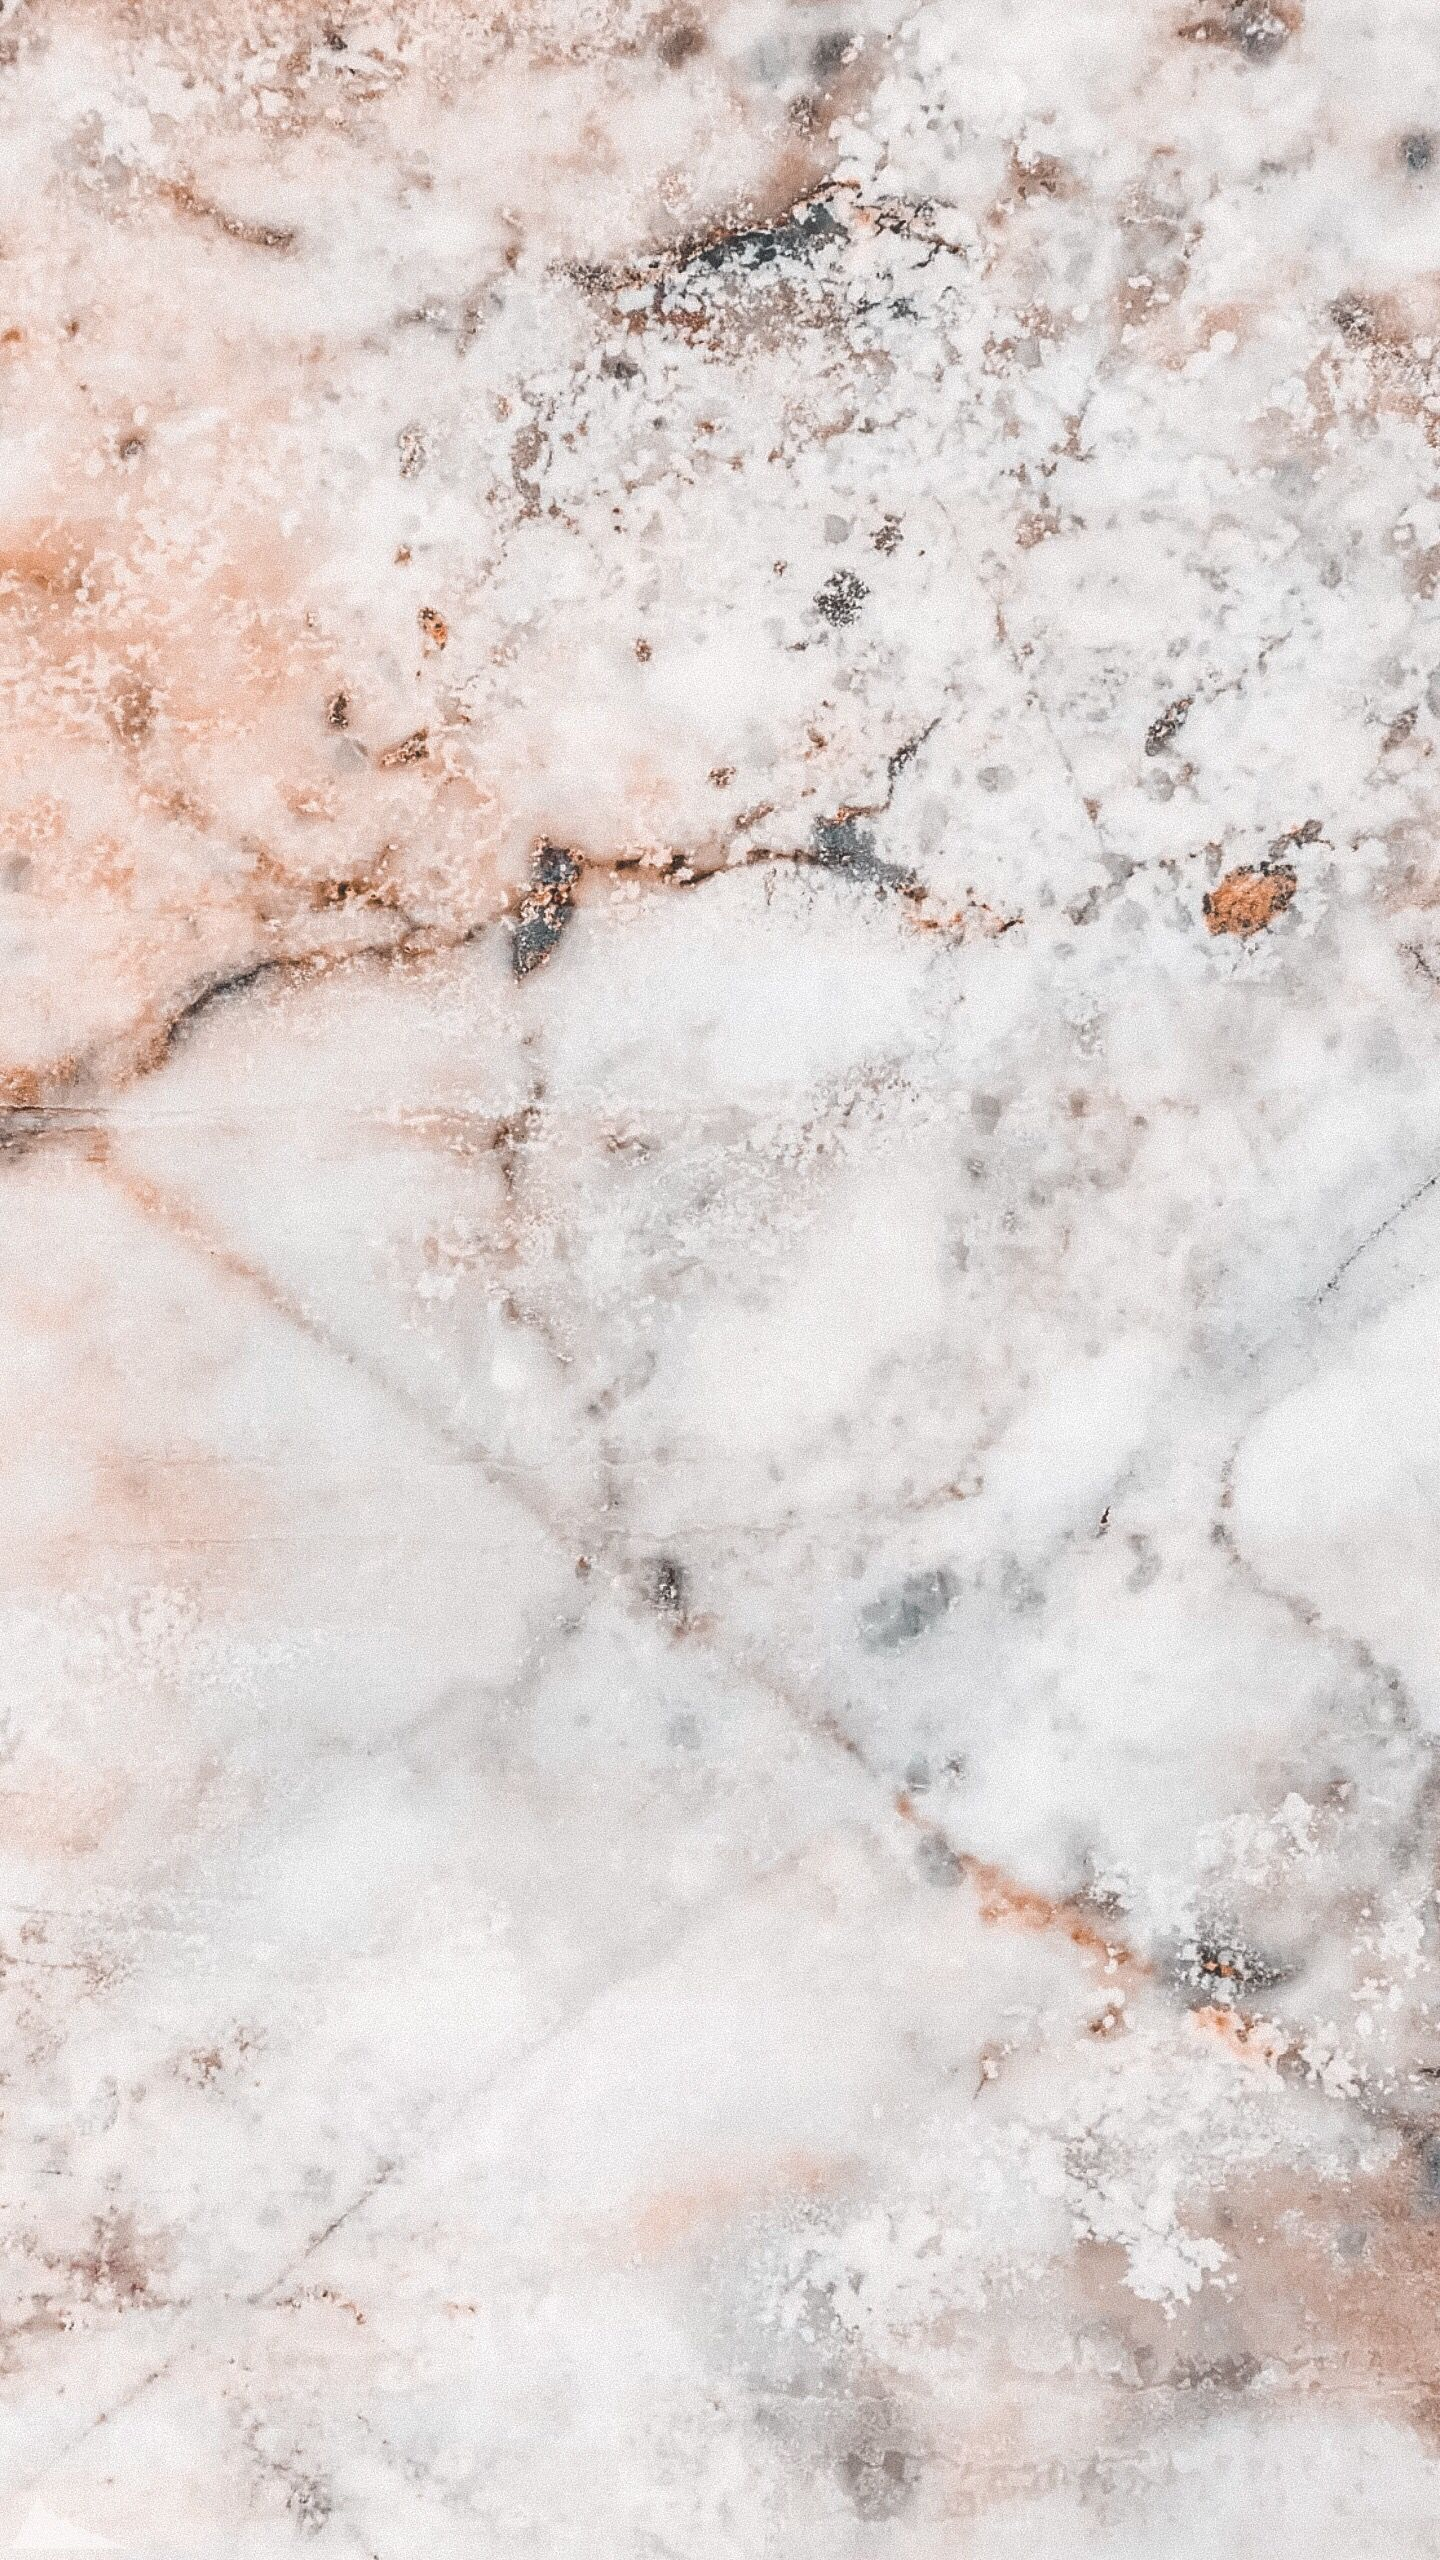 Get Latest Marble Phone Wallpaper HD This Month by Uploaded by user